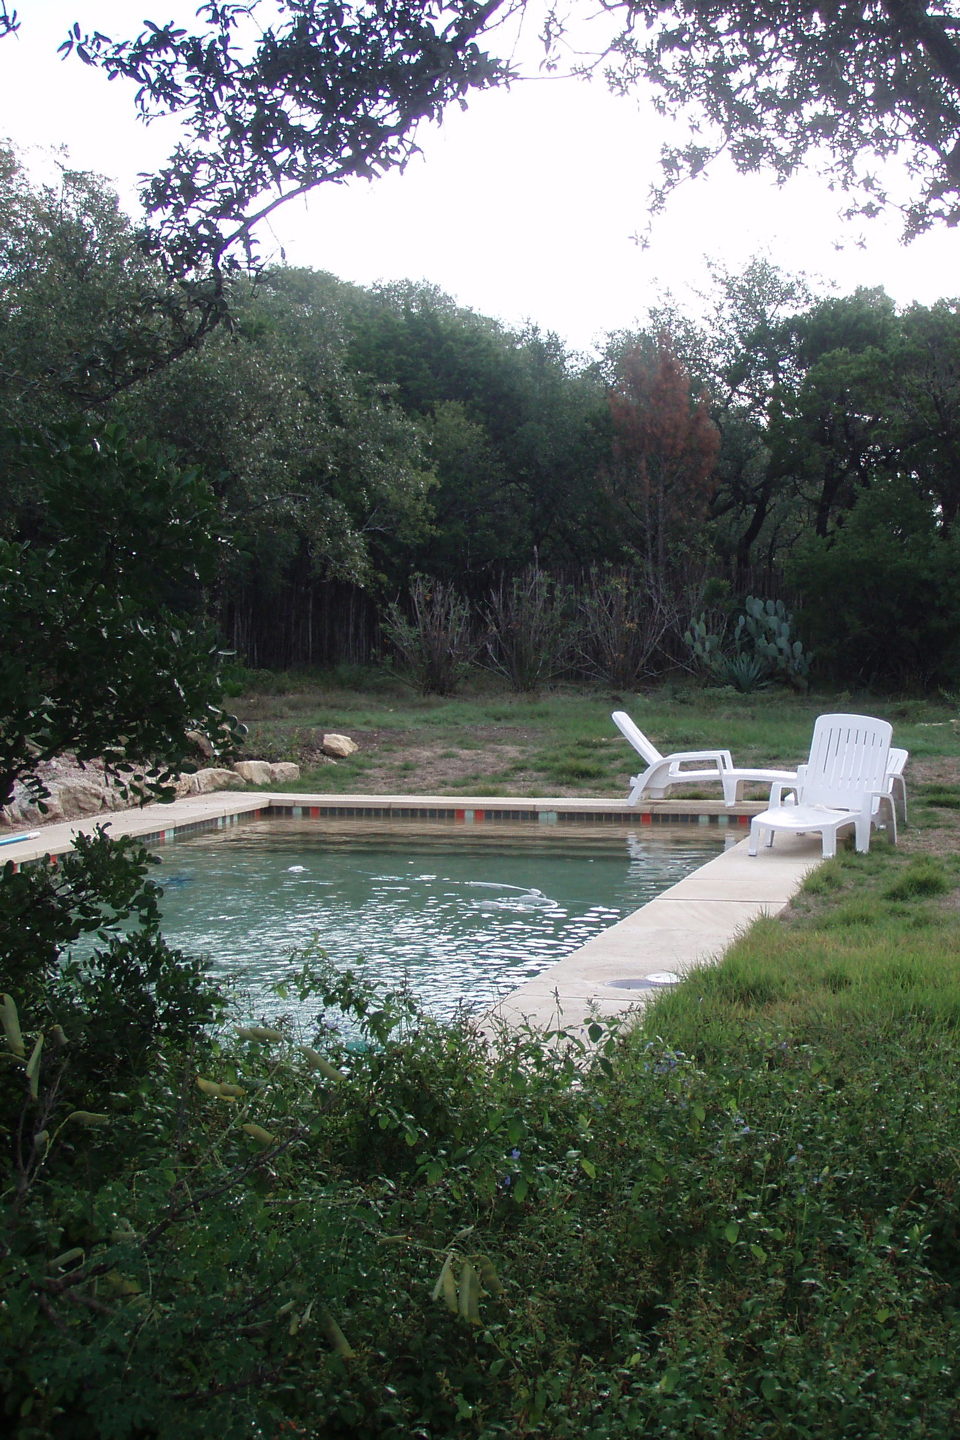 A before image of patchy grass and a pool